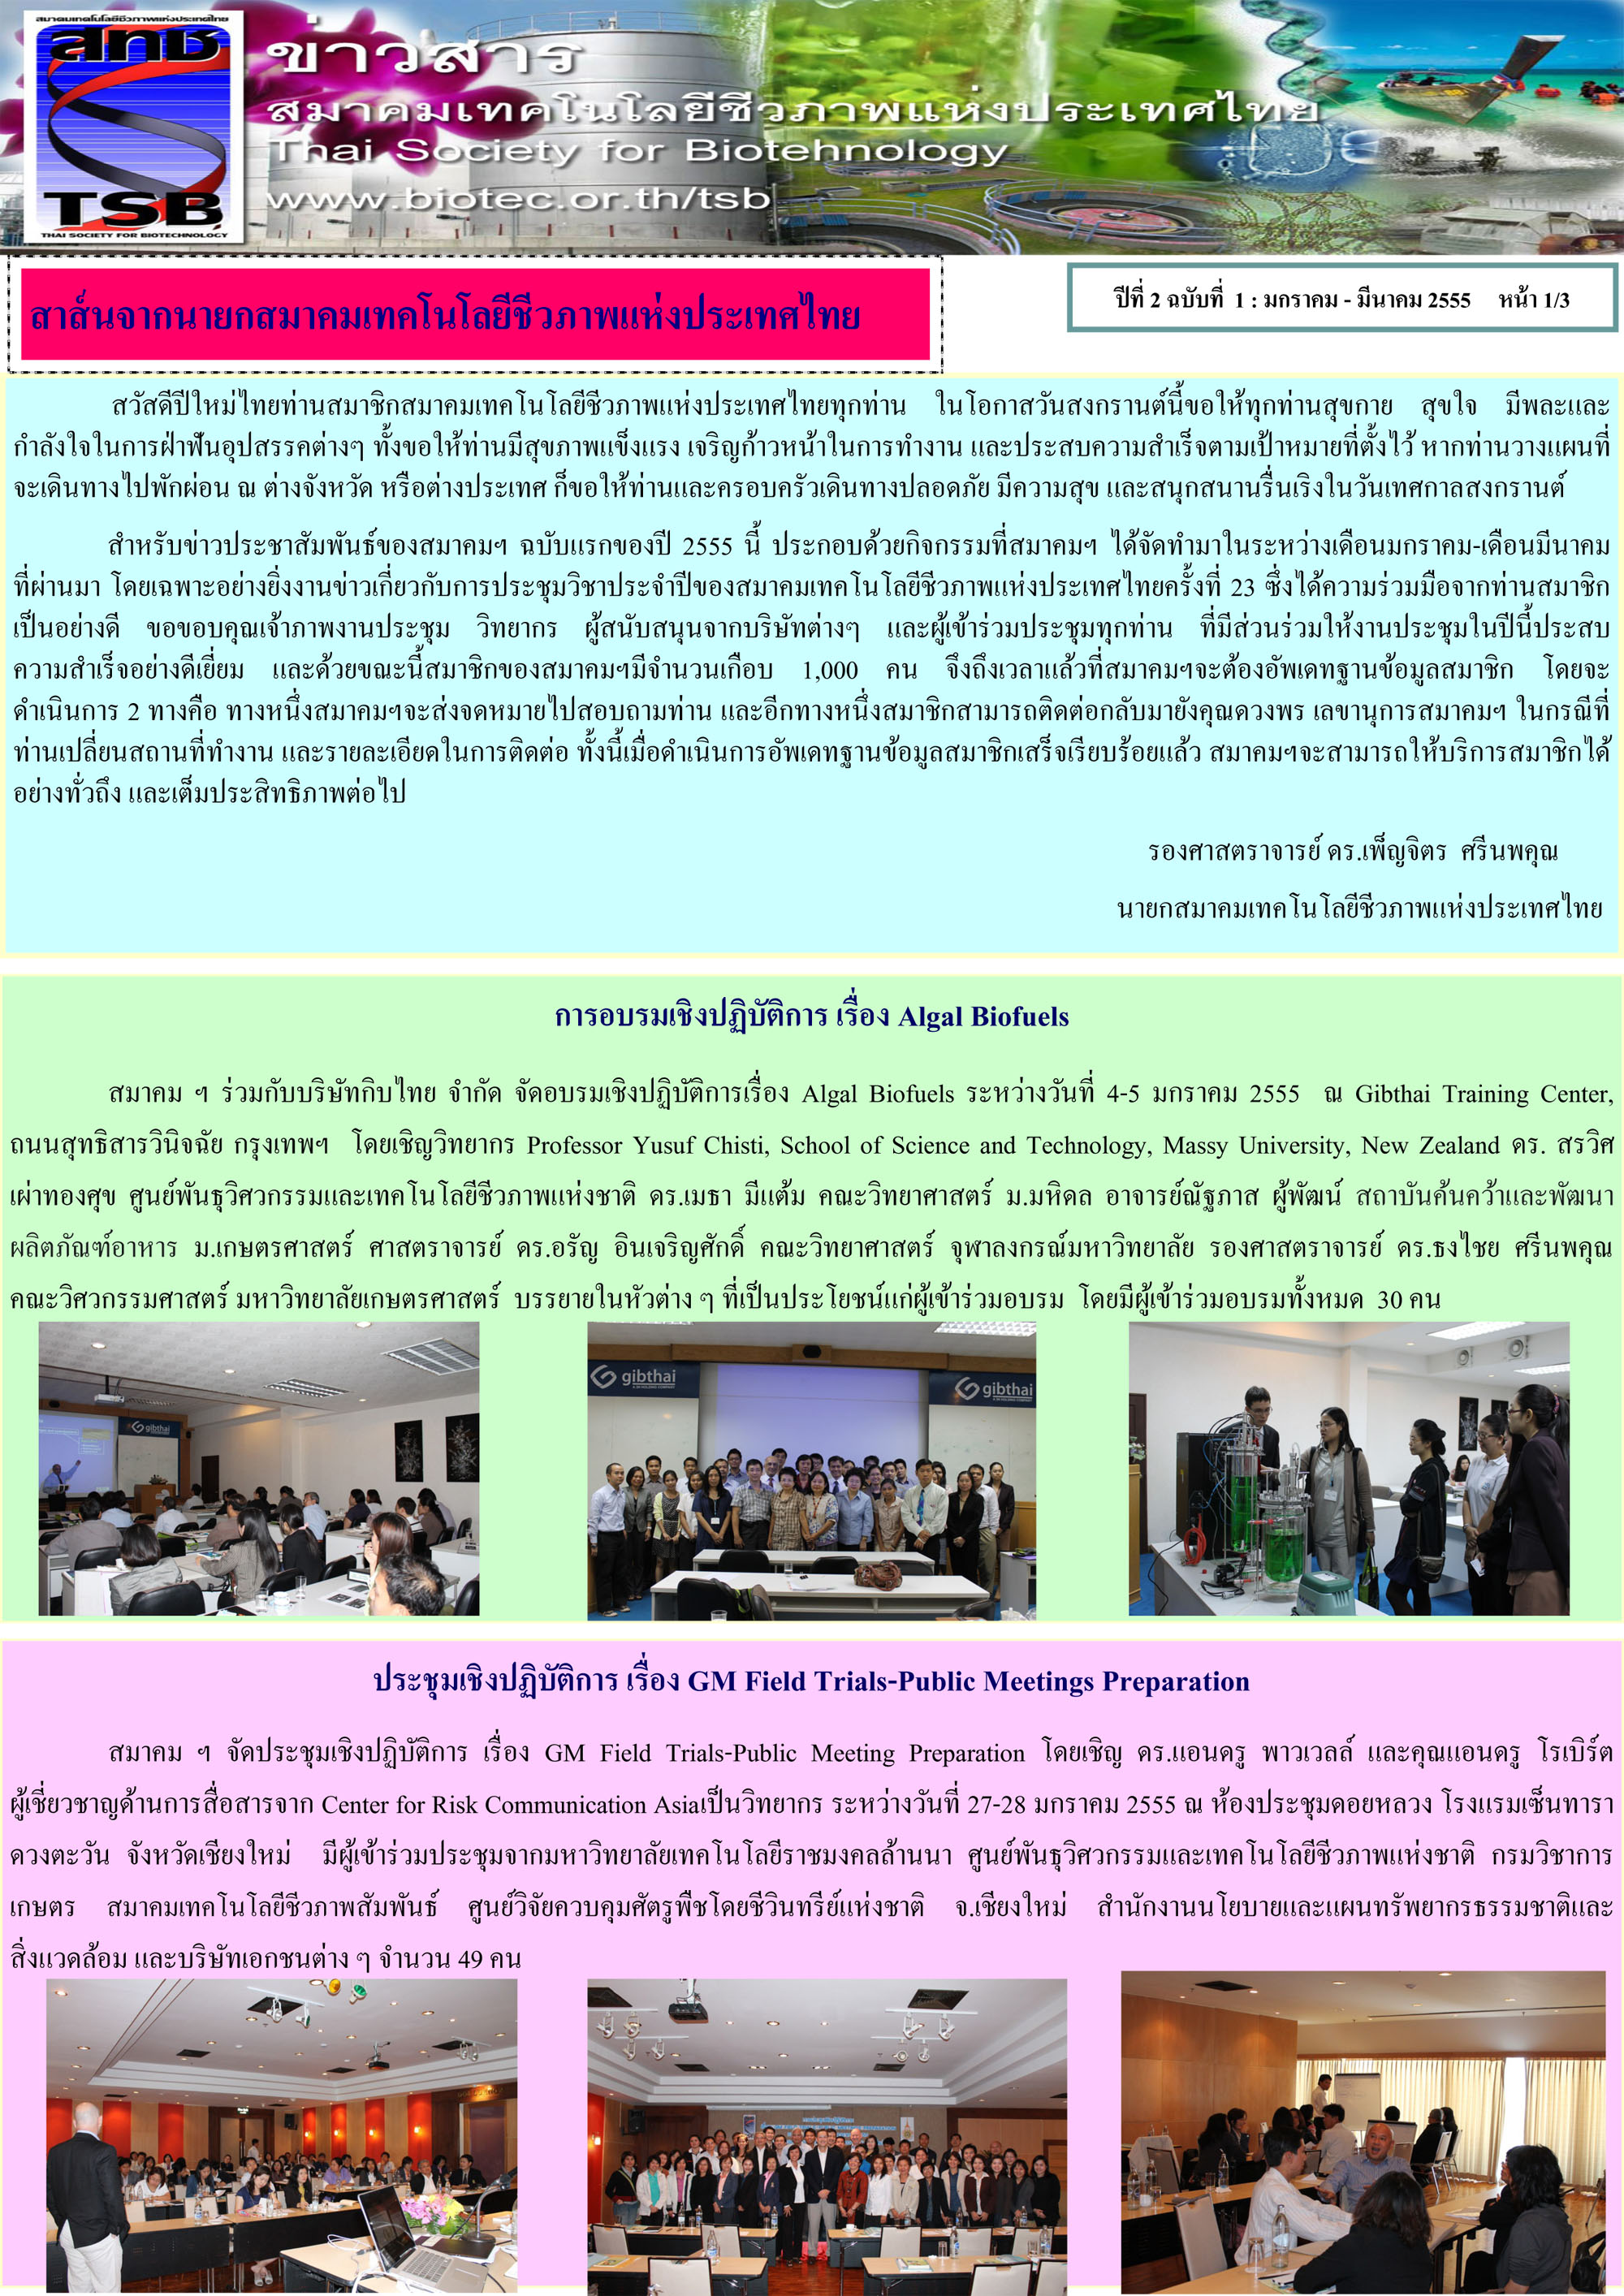 tsb newslatter jan-mar 2012-1